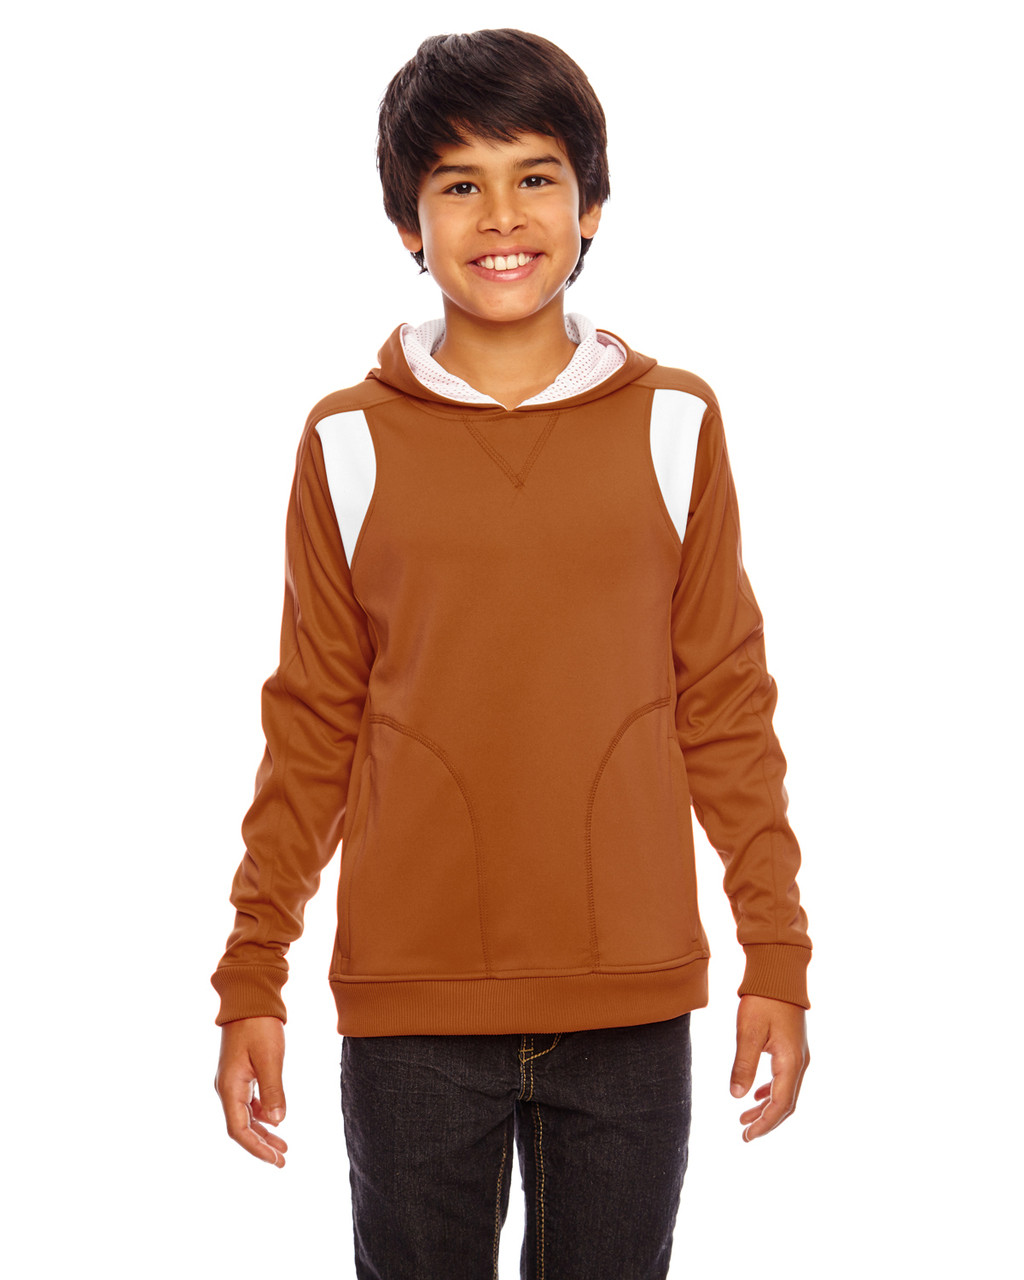 Burnt Orange/White - TT30Y Team 365 Youth Elite Performance Hoodie | BlankClothing.ca